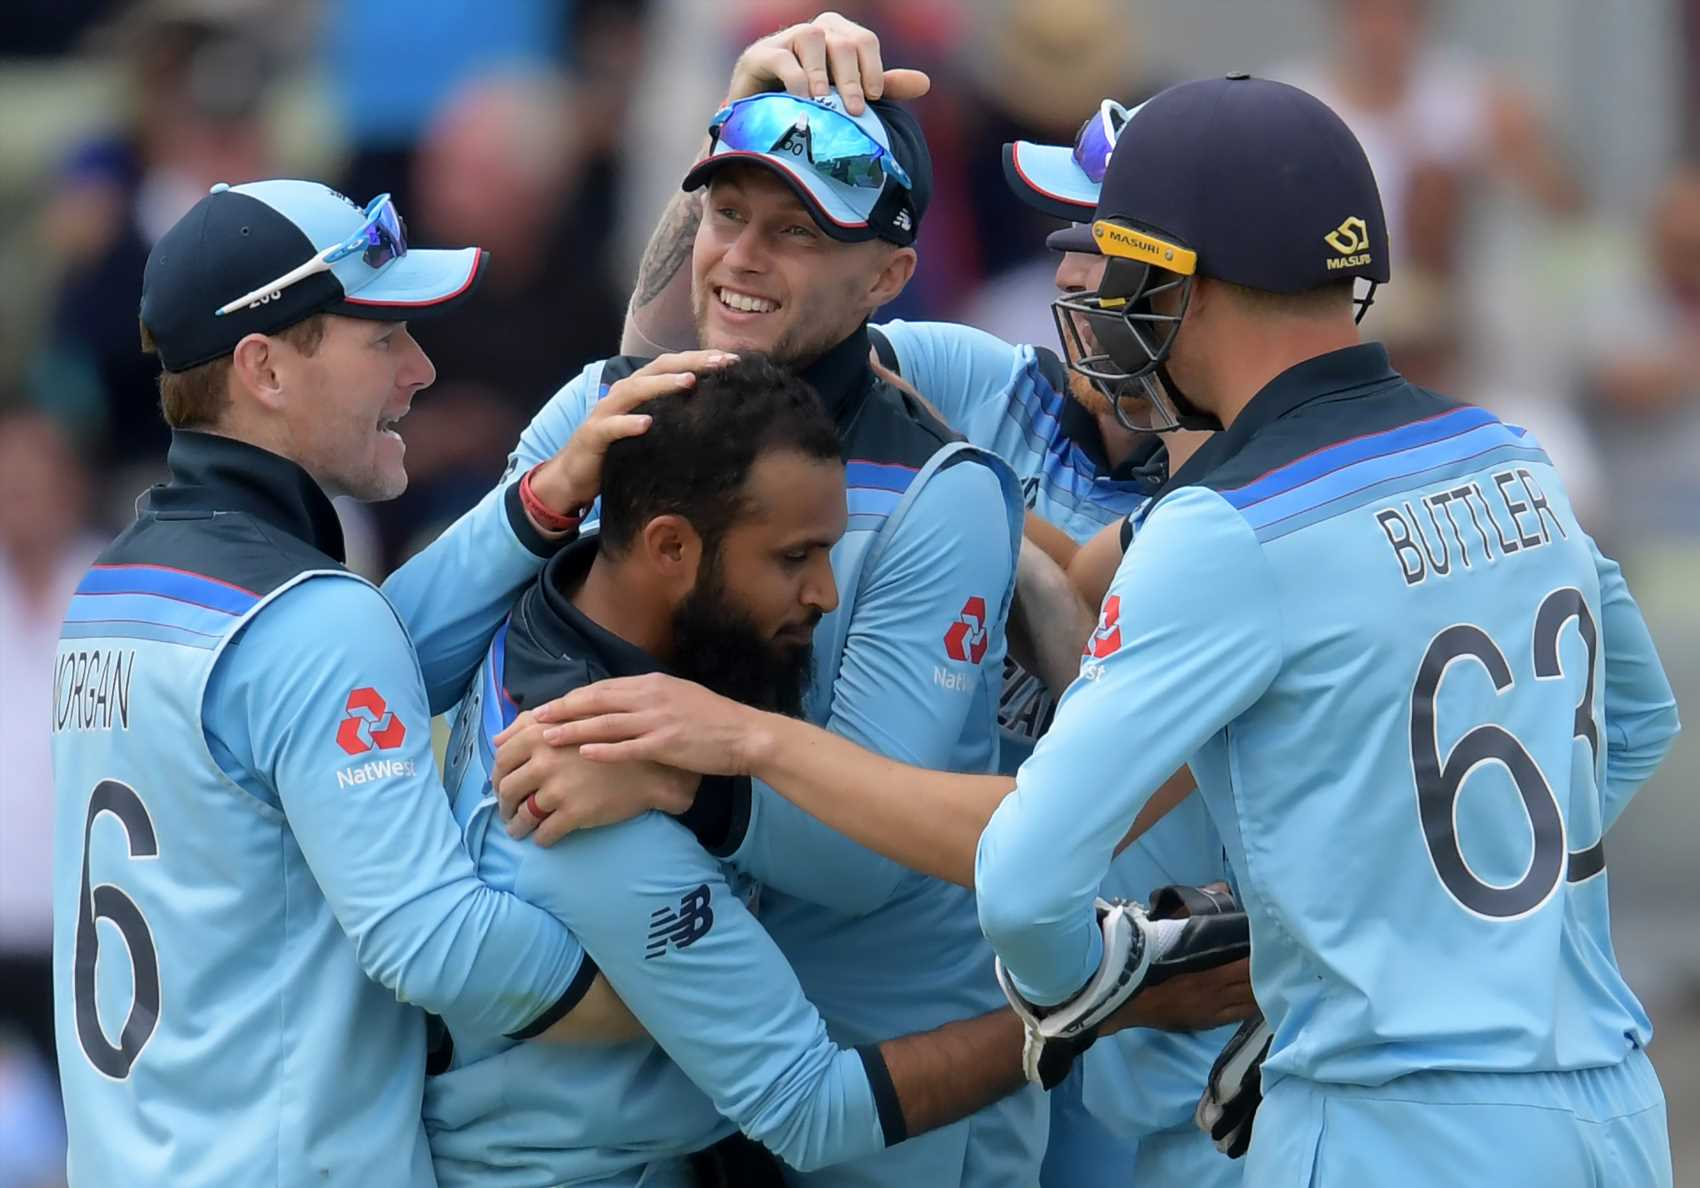 Cricket World Cup final live stream FREE: How to watch England vs New Zealand 2019 on terrestrial TV and online – The Sun